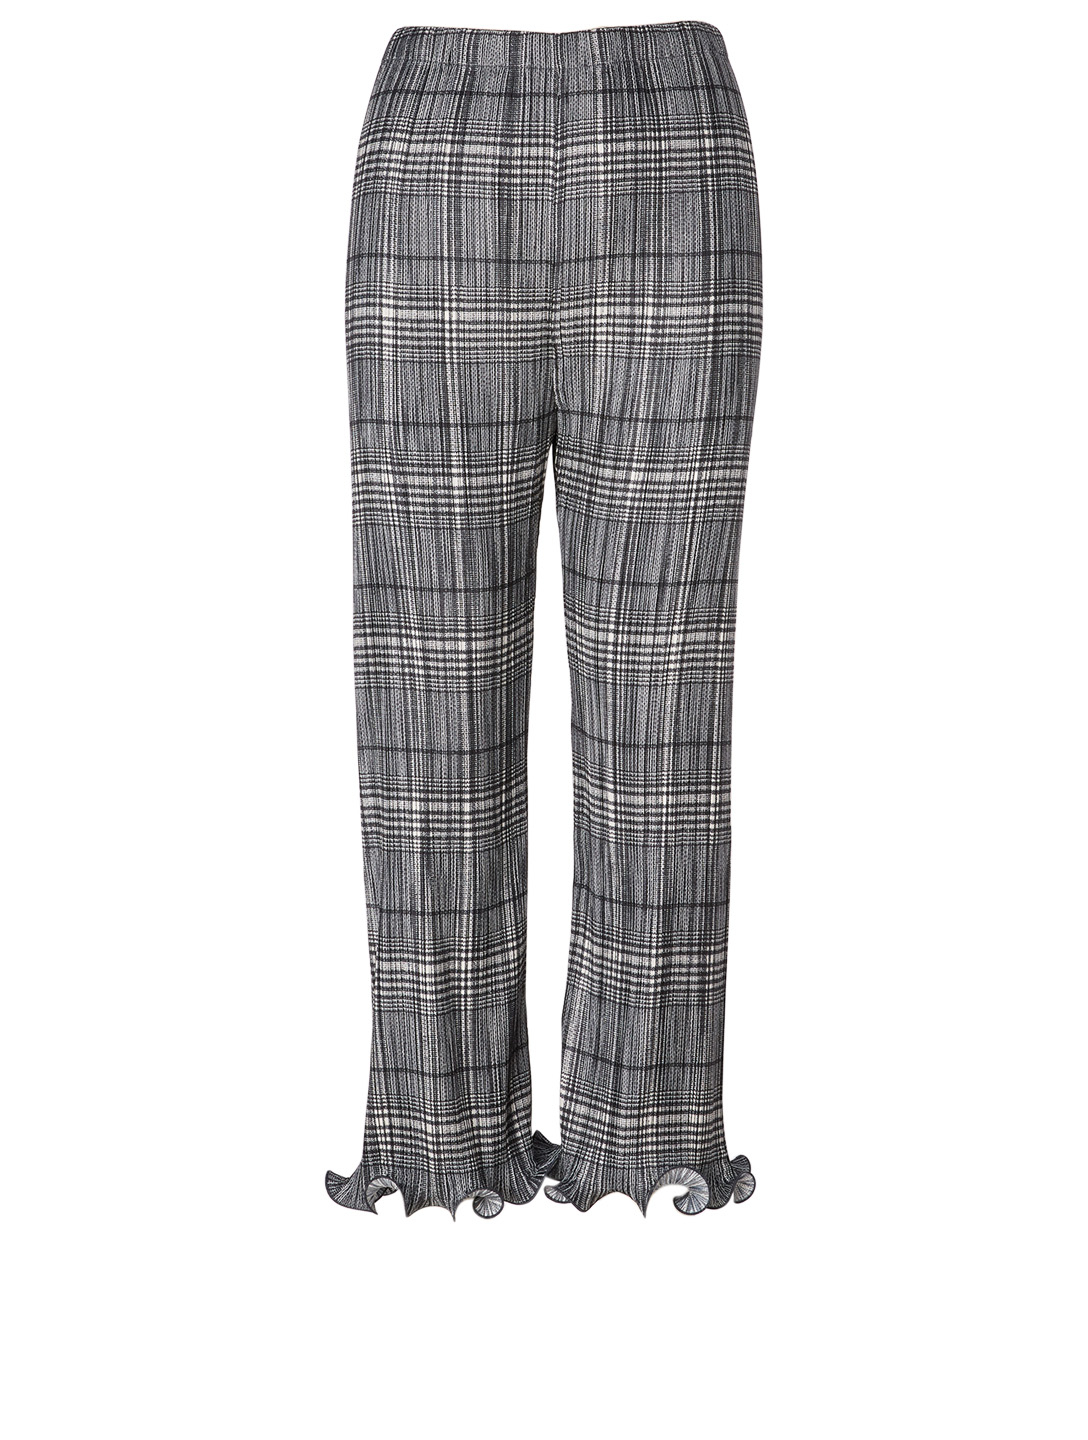 GIVENCHY Pleated Pants In Check Print Women's Grey